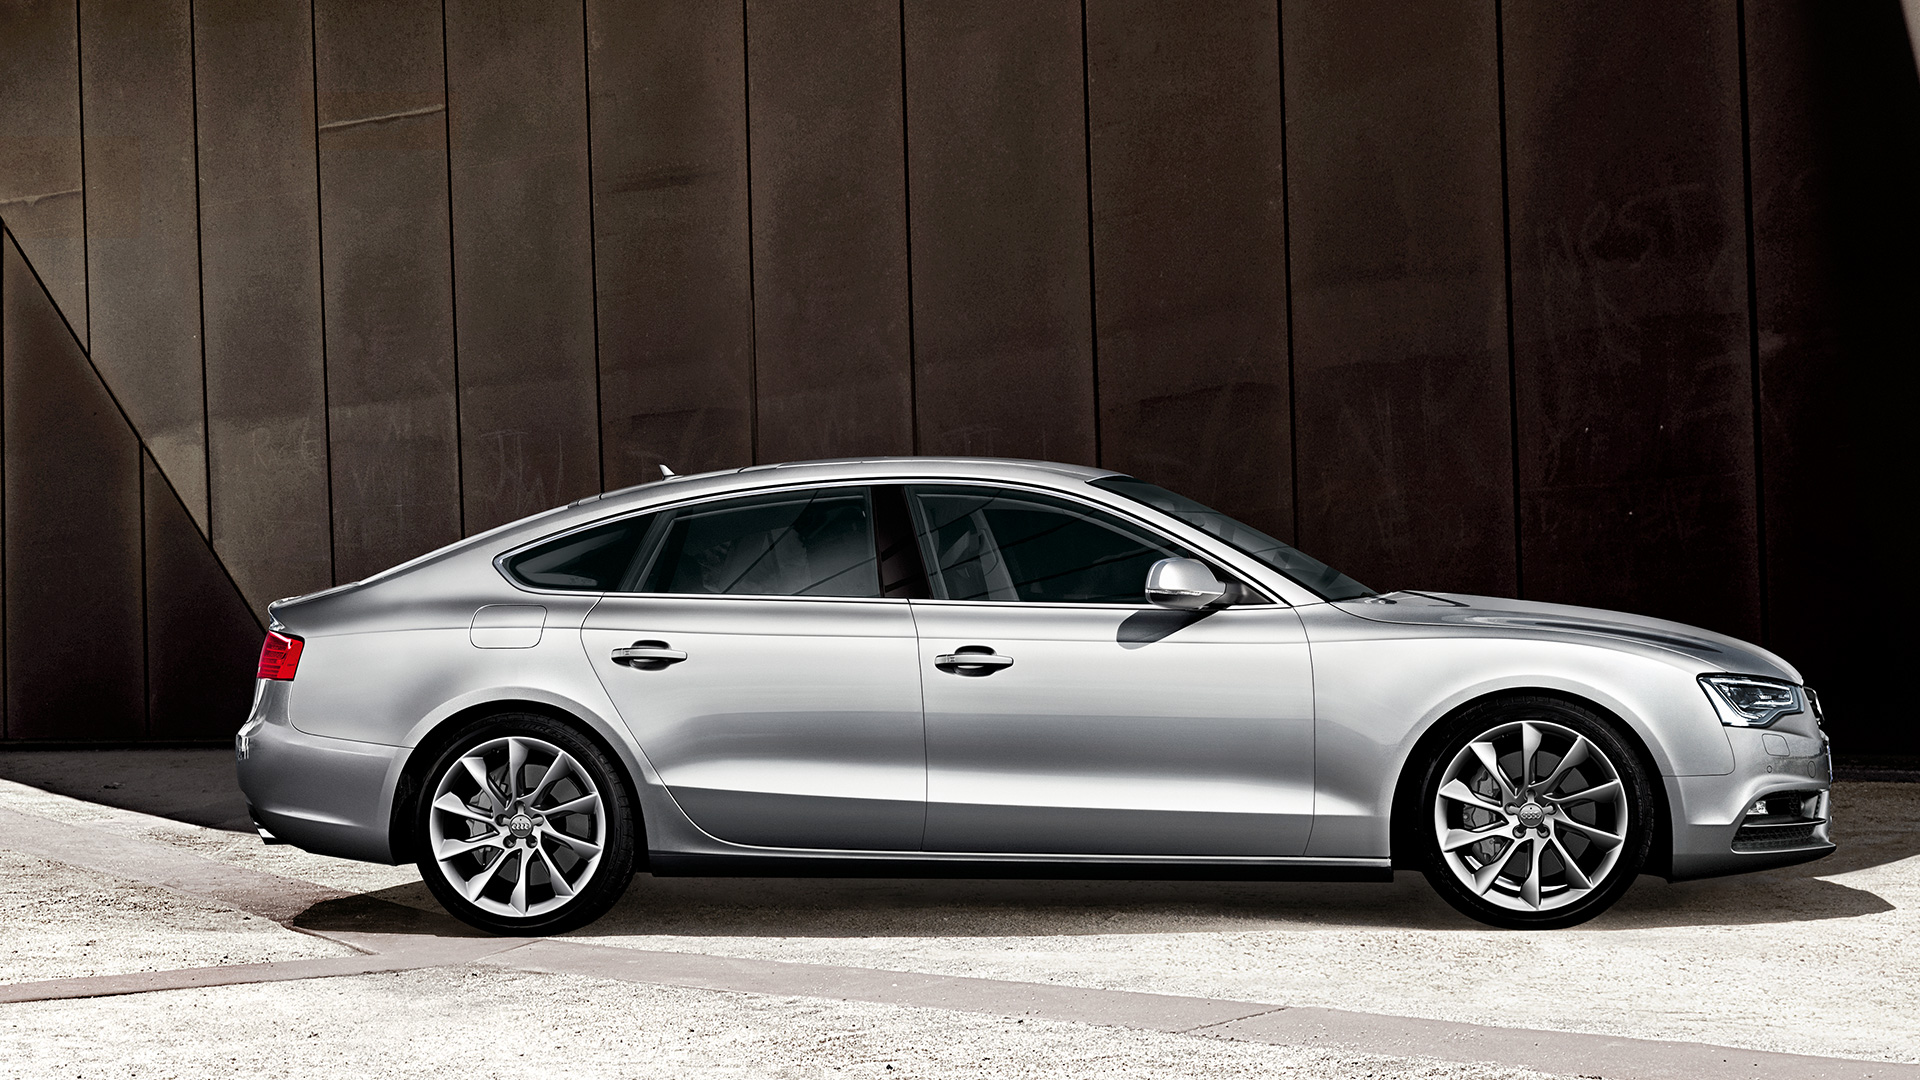 Audi Images Audi A5 Sportback Hd Wallpaper And Background Photos